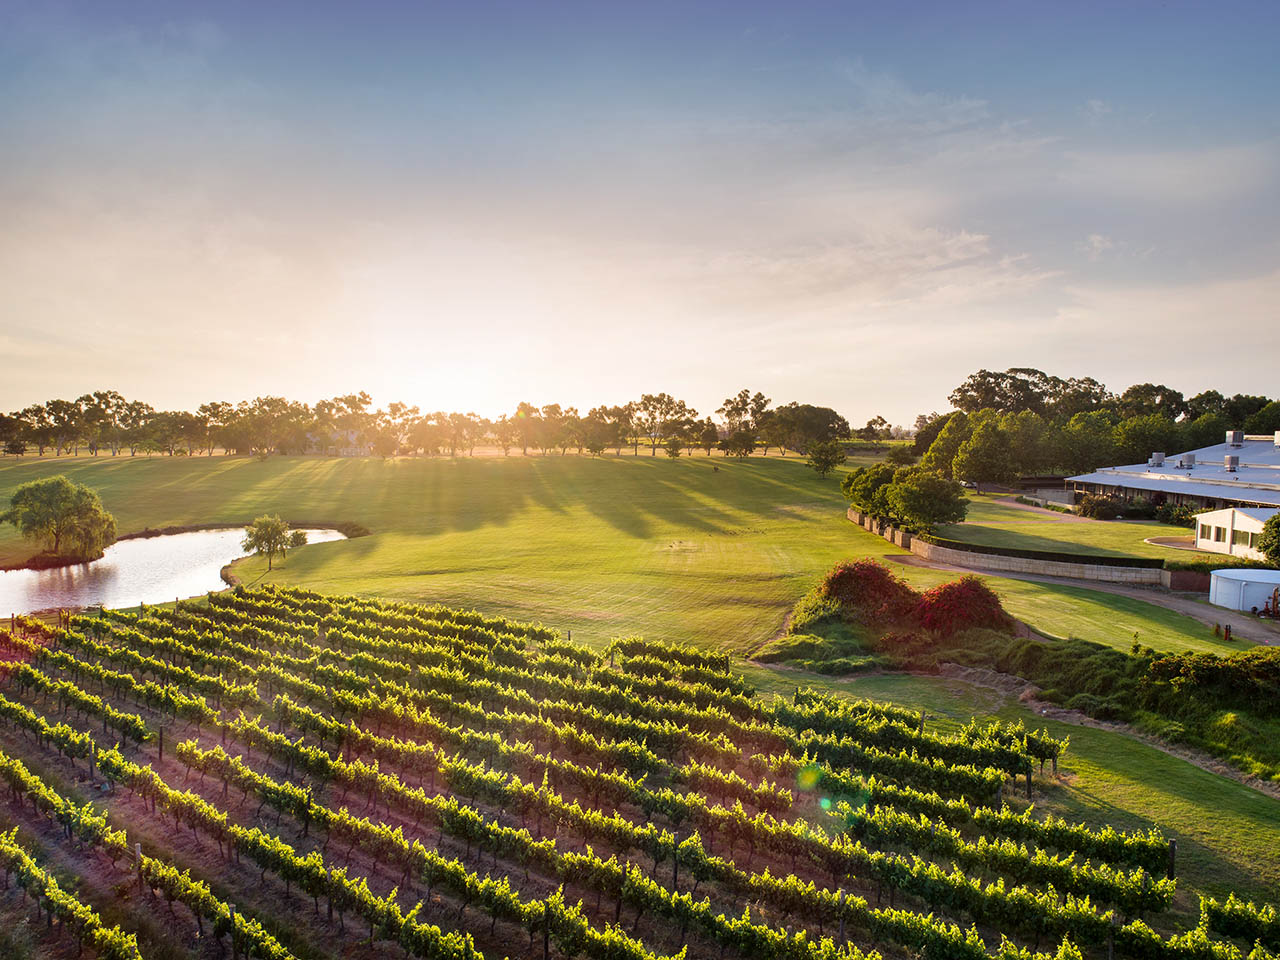 The Wine Vineyards With The Sun Setting In The Background.